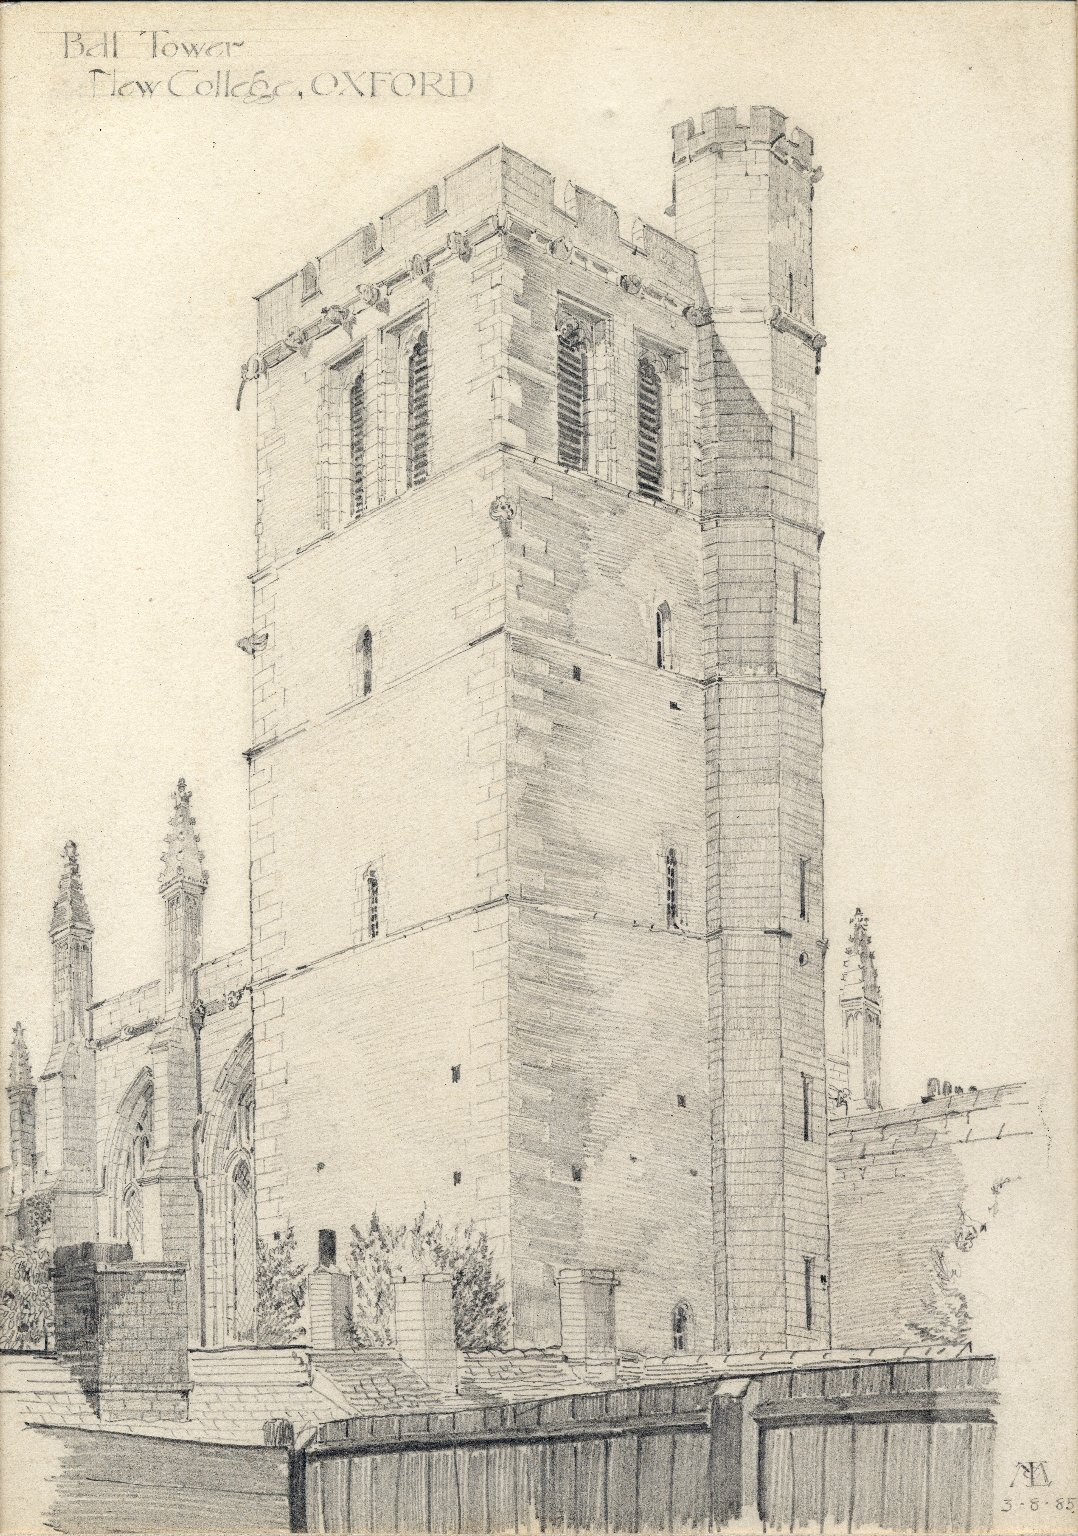 Bell tower of New College, Oxford